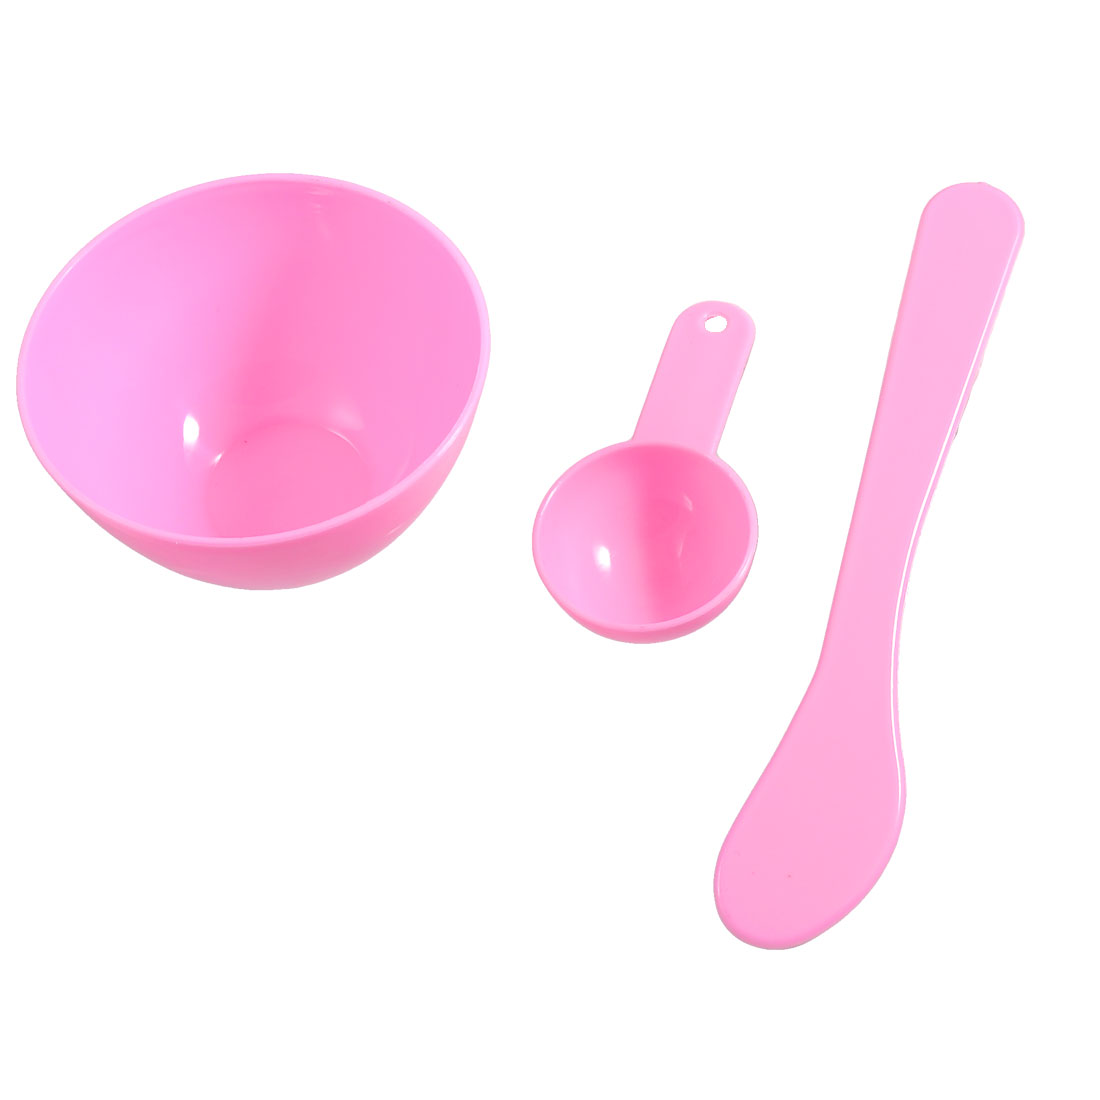 Ladies 3 in 1 DIY Facial Skin Care Mask Bowl Mixing Stick Gauge Spoon Set Pink